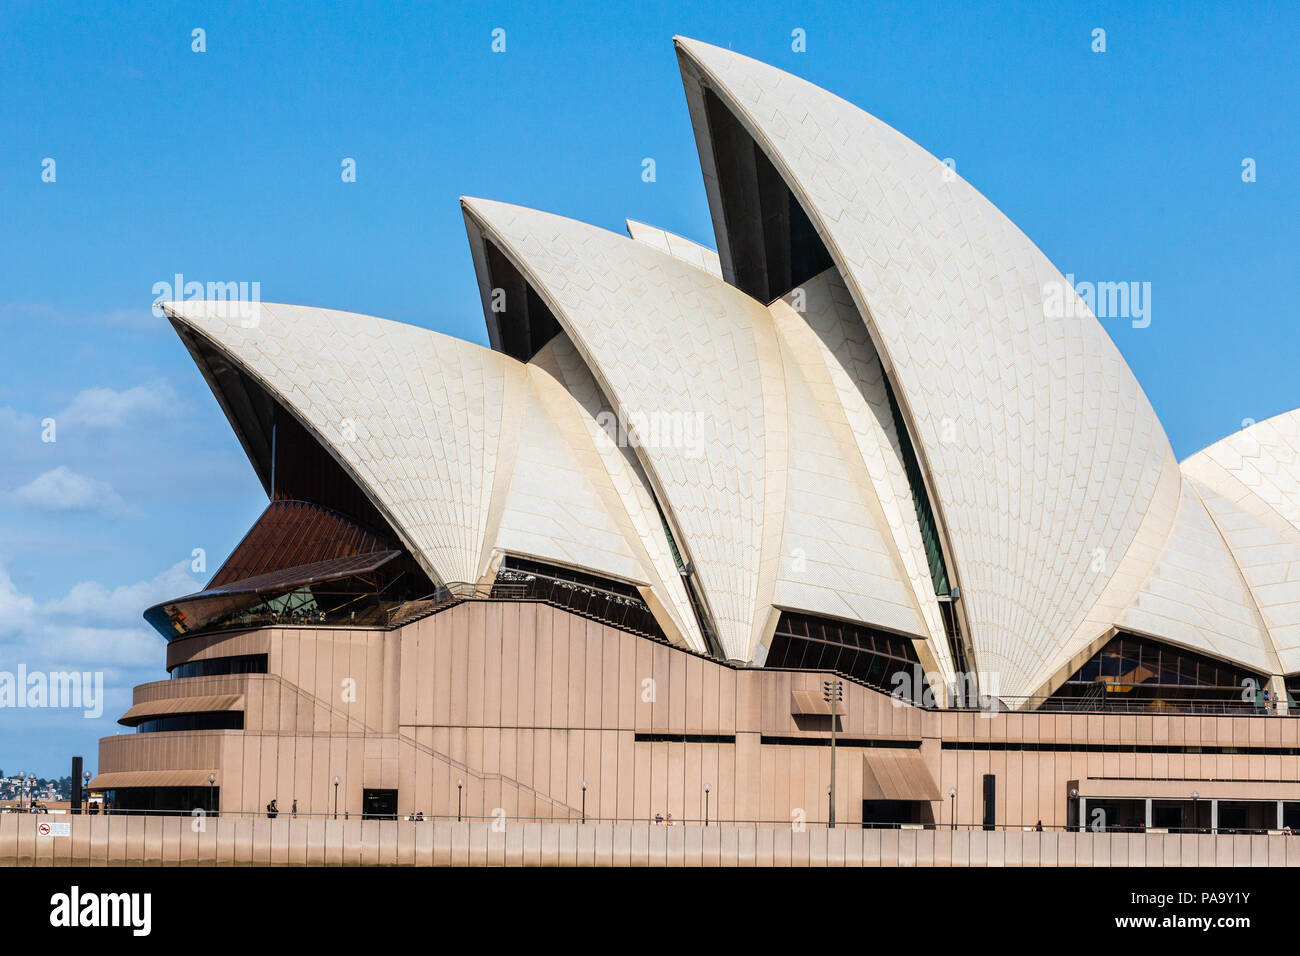 Sydney Opera House, designed by Jørn Utzon and opened in the 1970s. - Stock Image